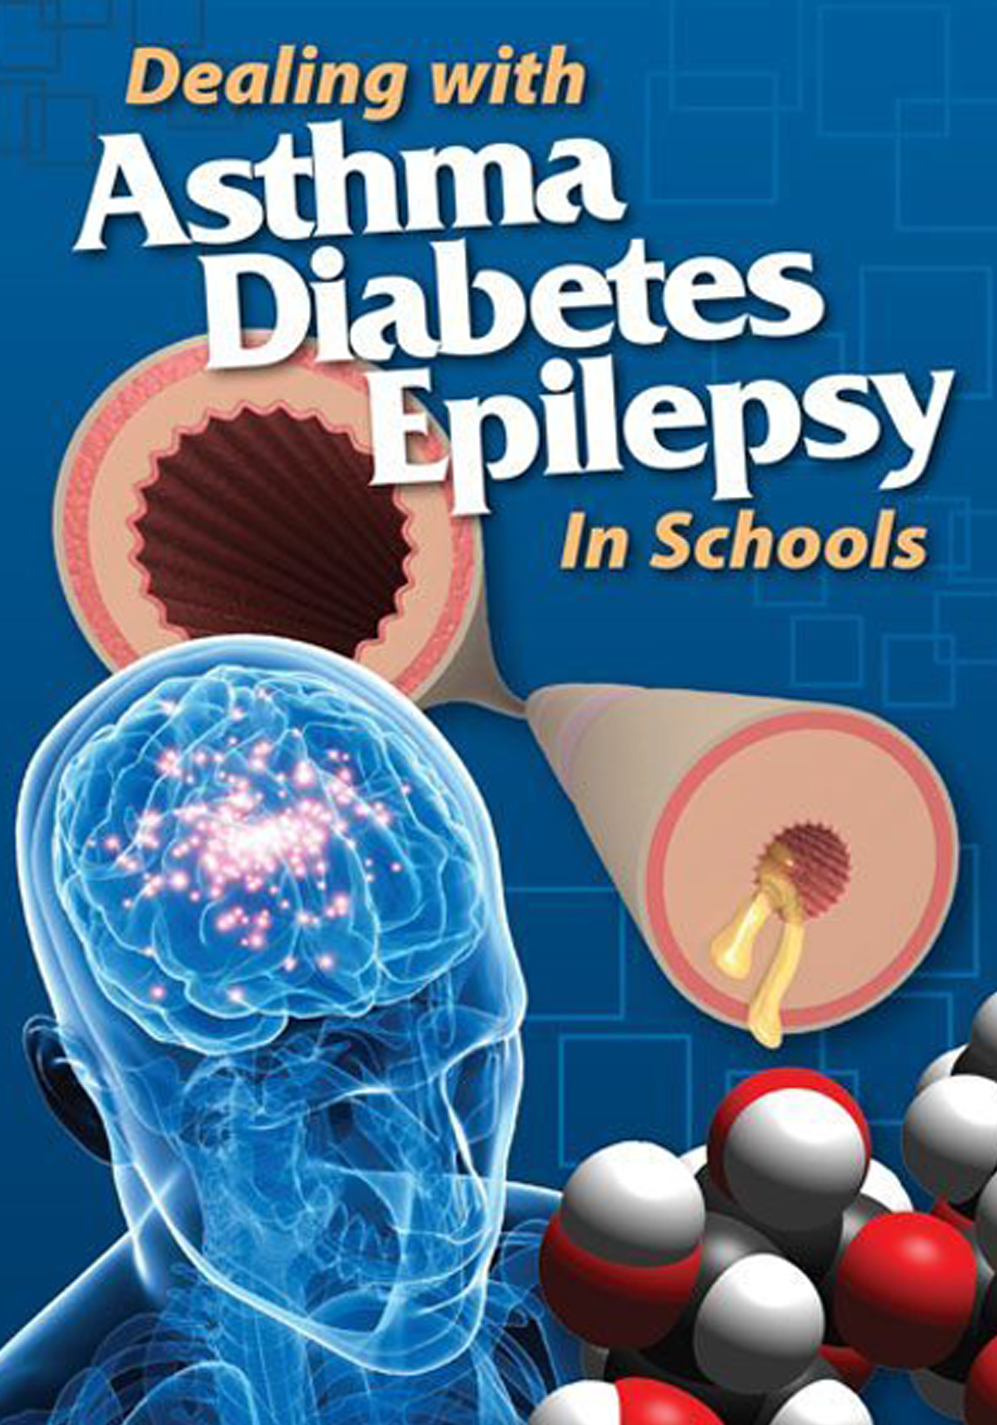 Dealing-With-Asthma-Diabetes-Epilepsy-In-Schools-LMS AccuTrain